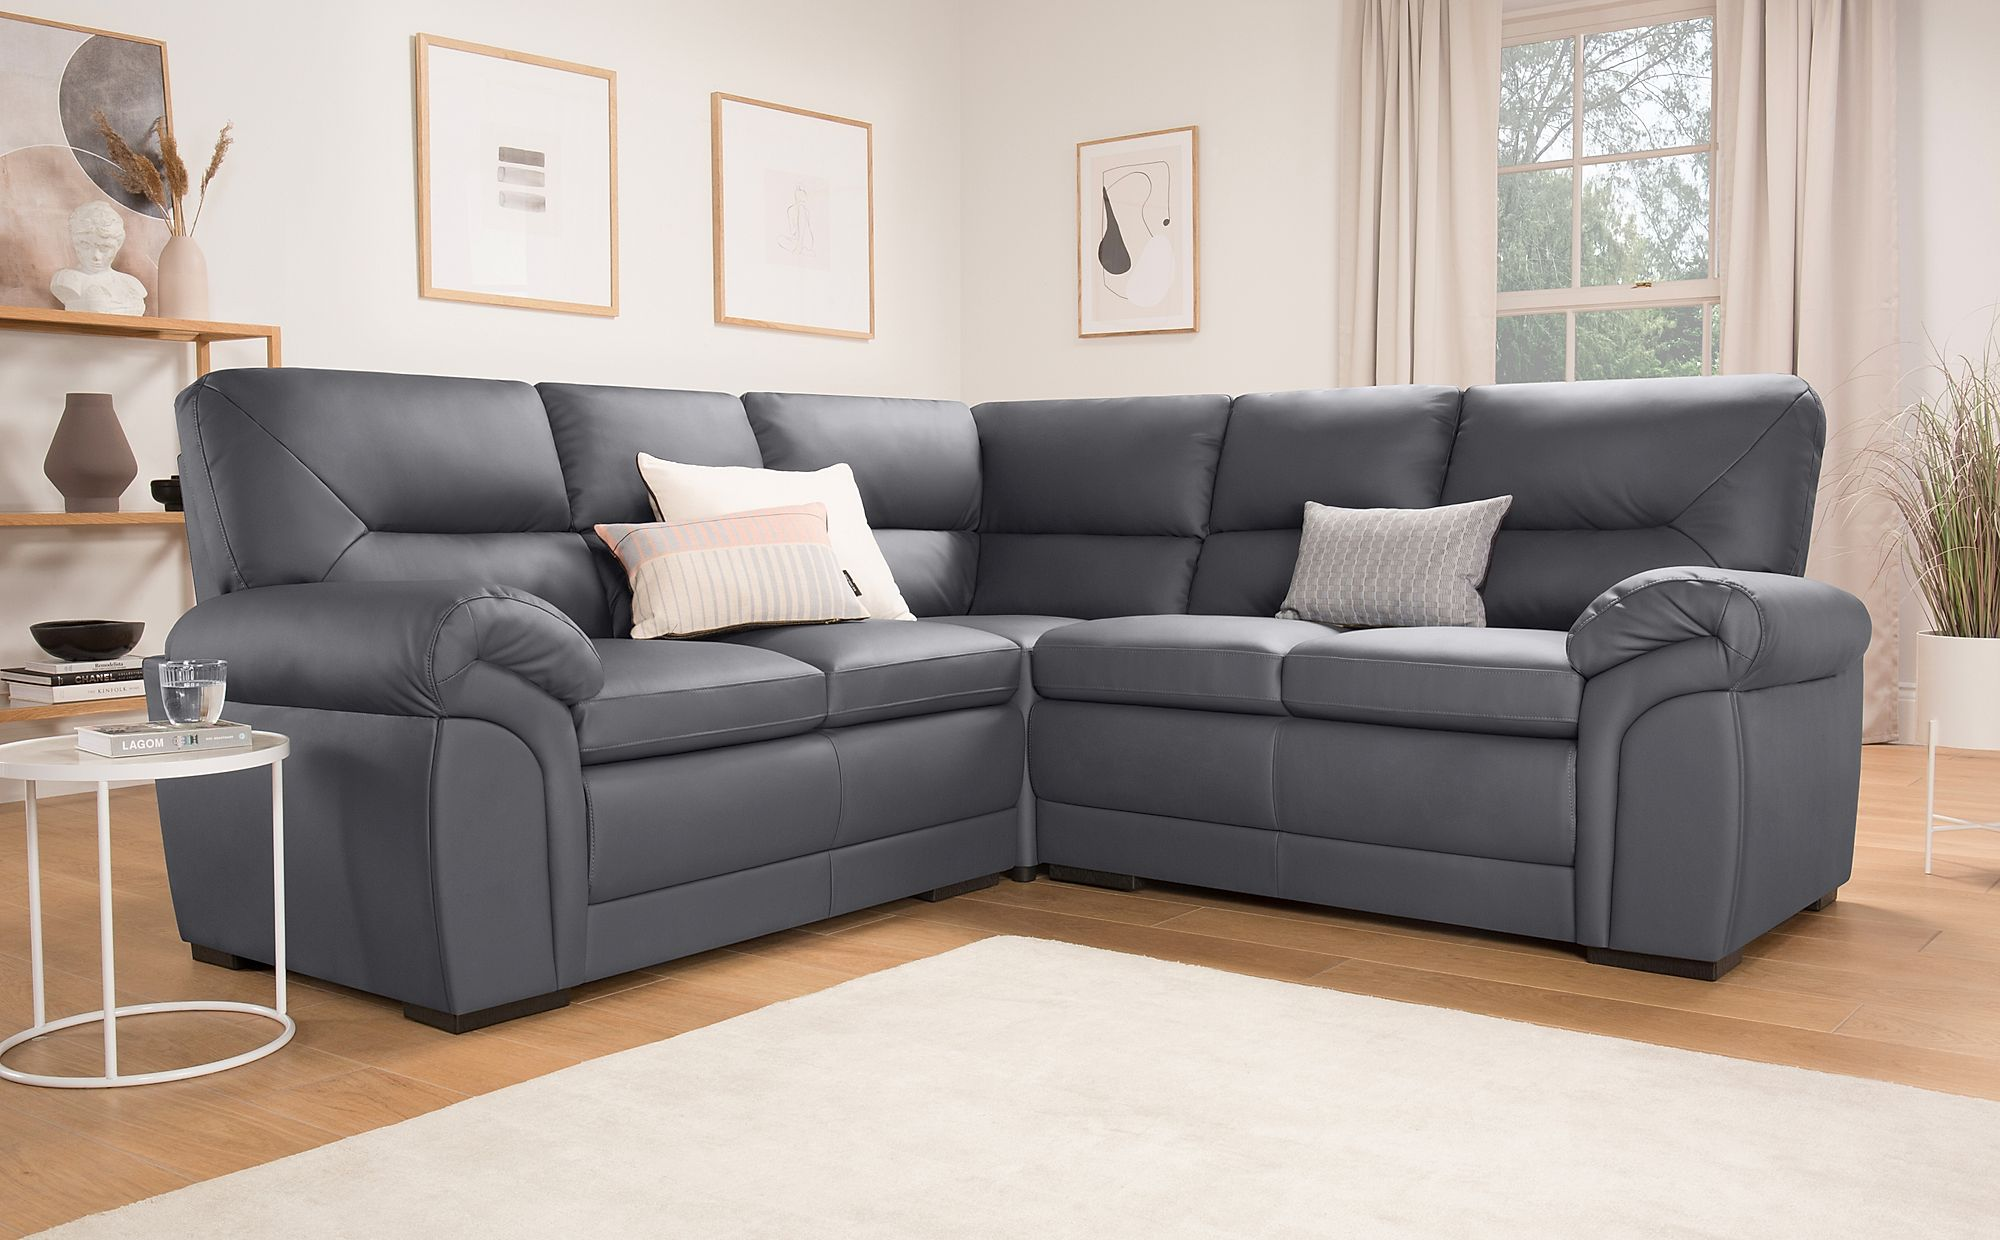 Bromley Grey Leather Corner Sofa Only 163 899 99 Furniture